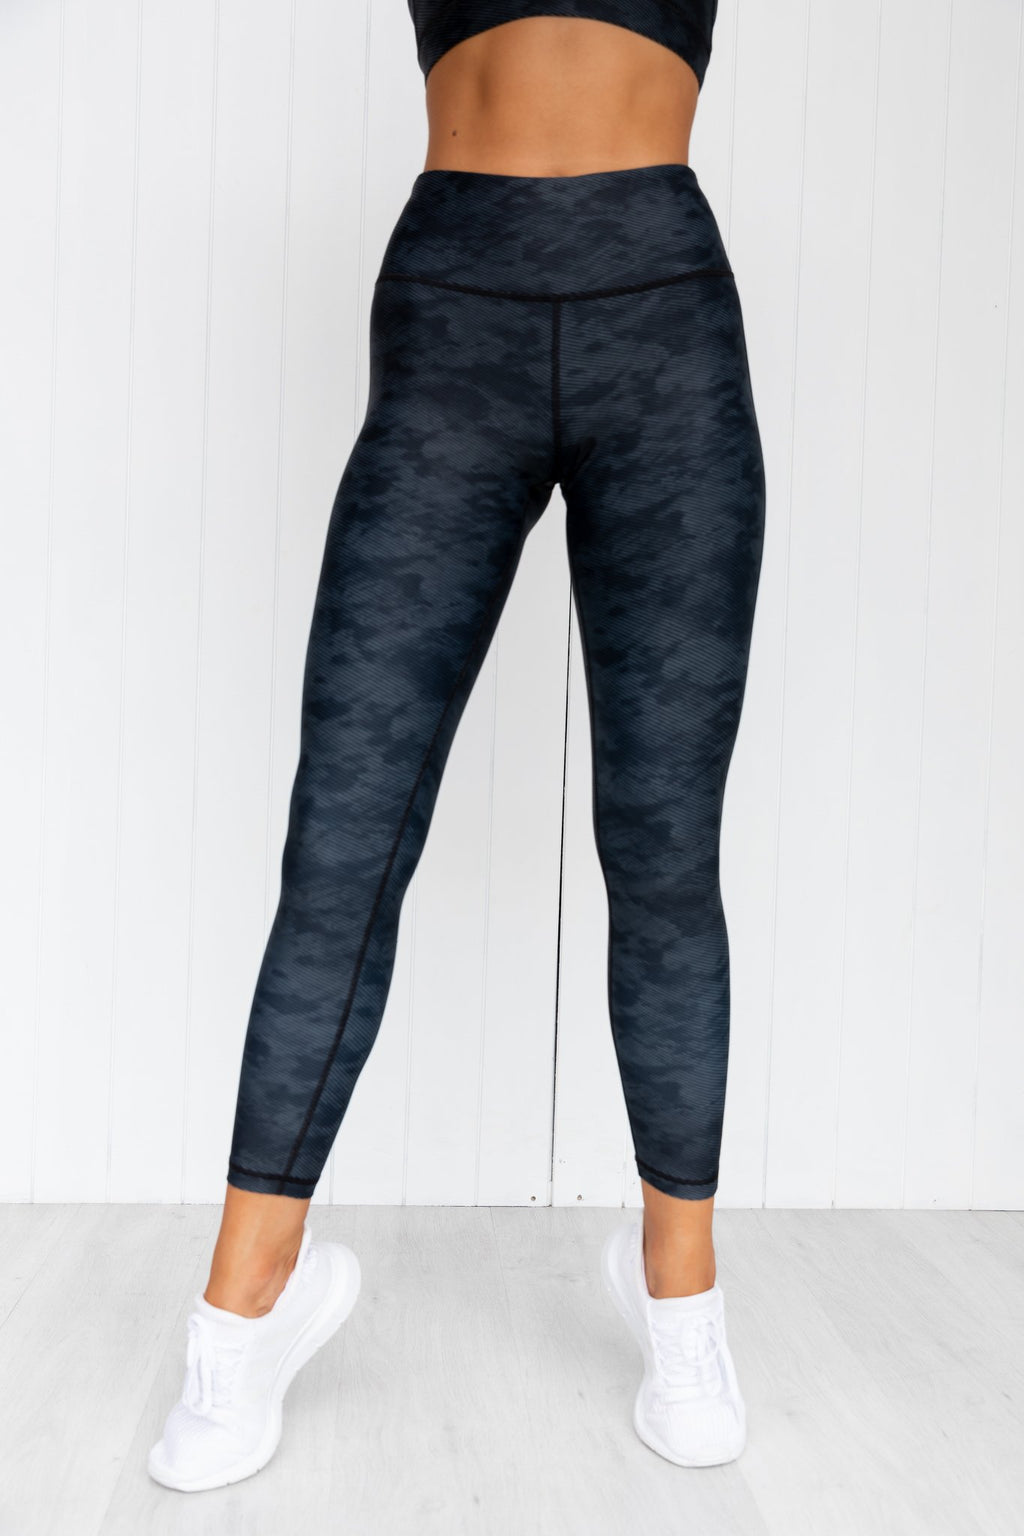 Zinnia Dark Wash Legging - PURE DASH